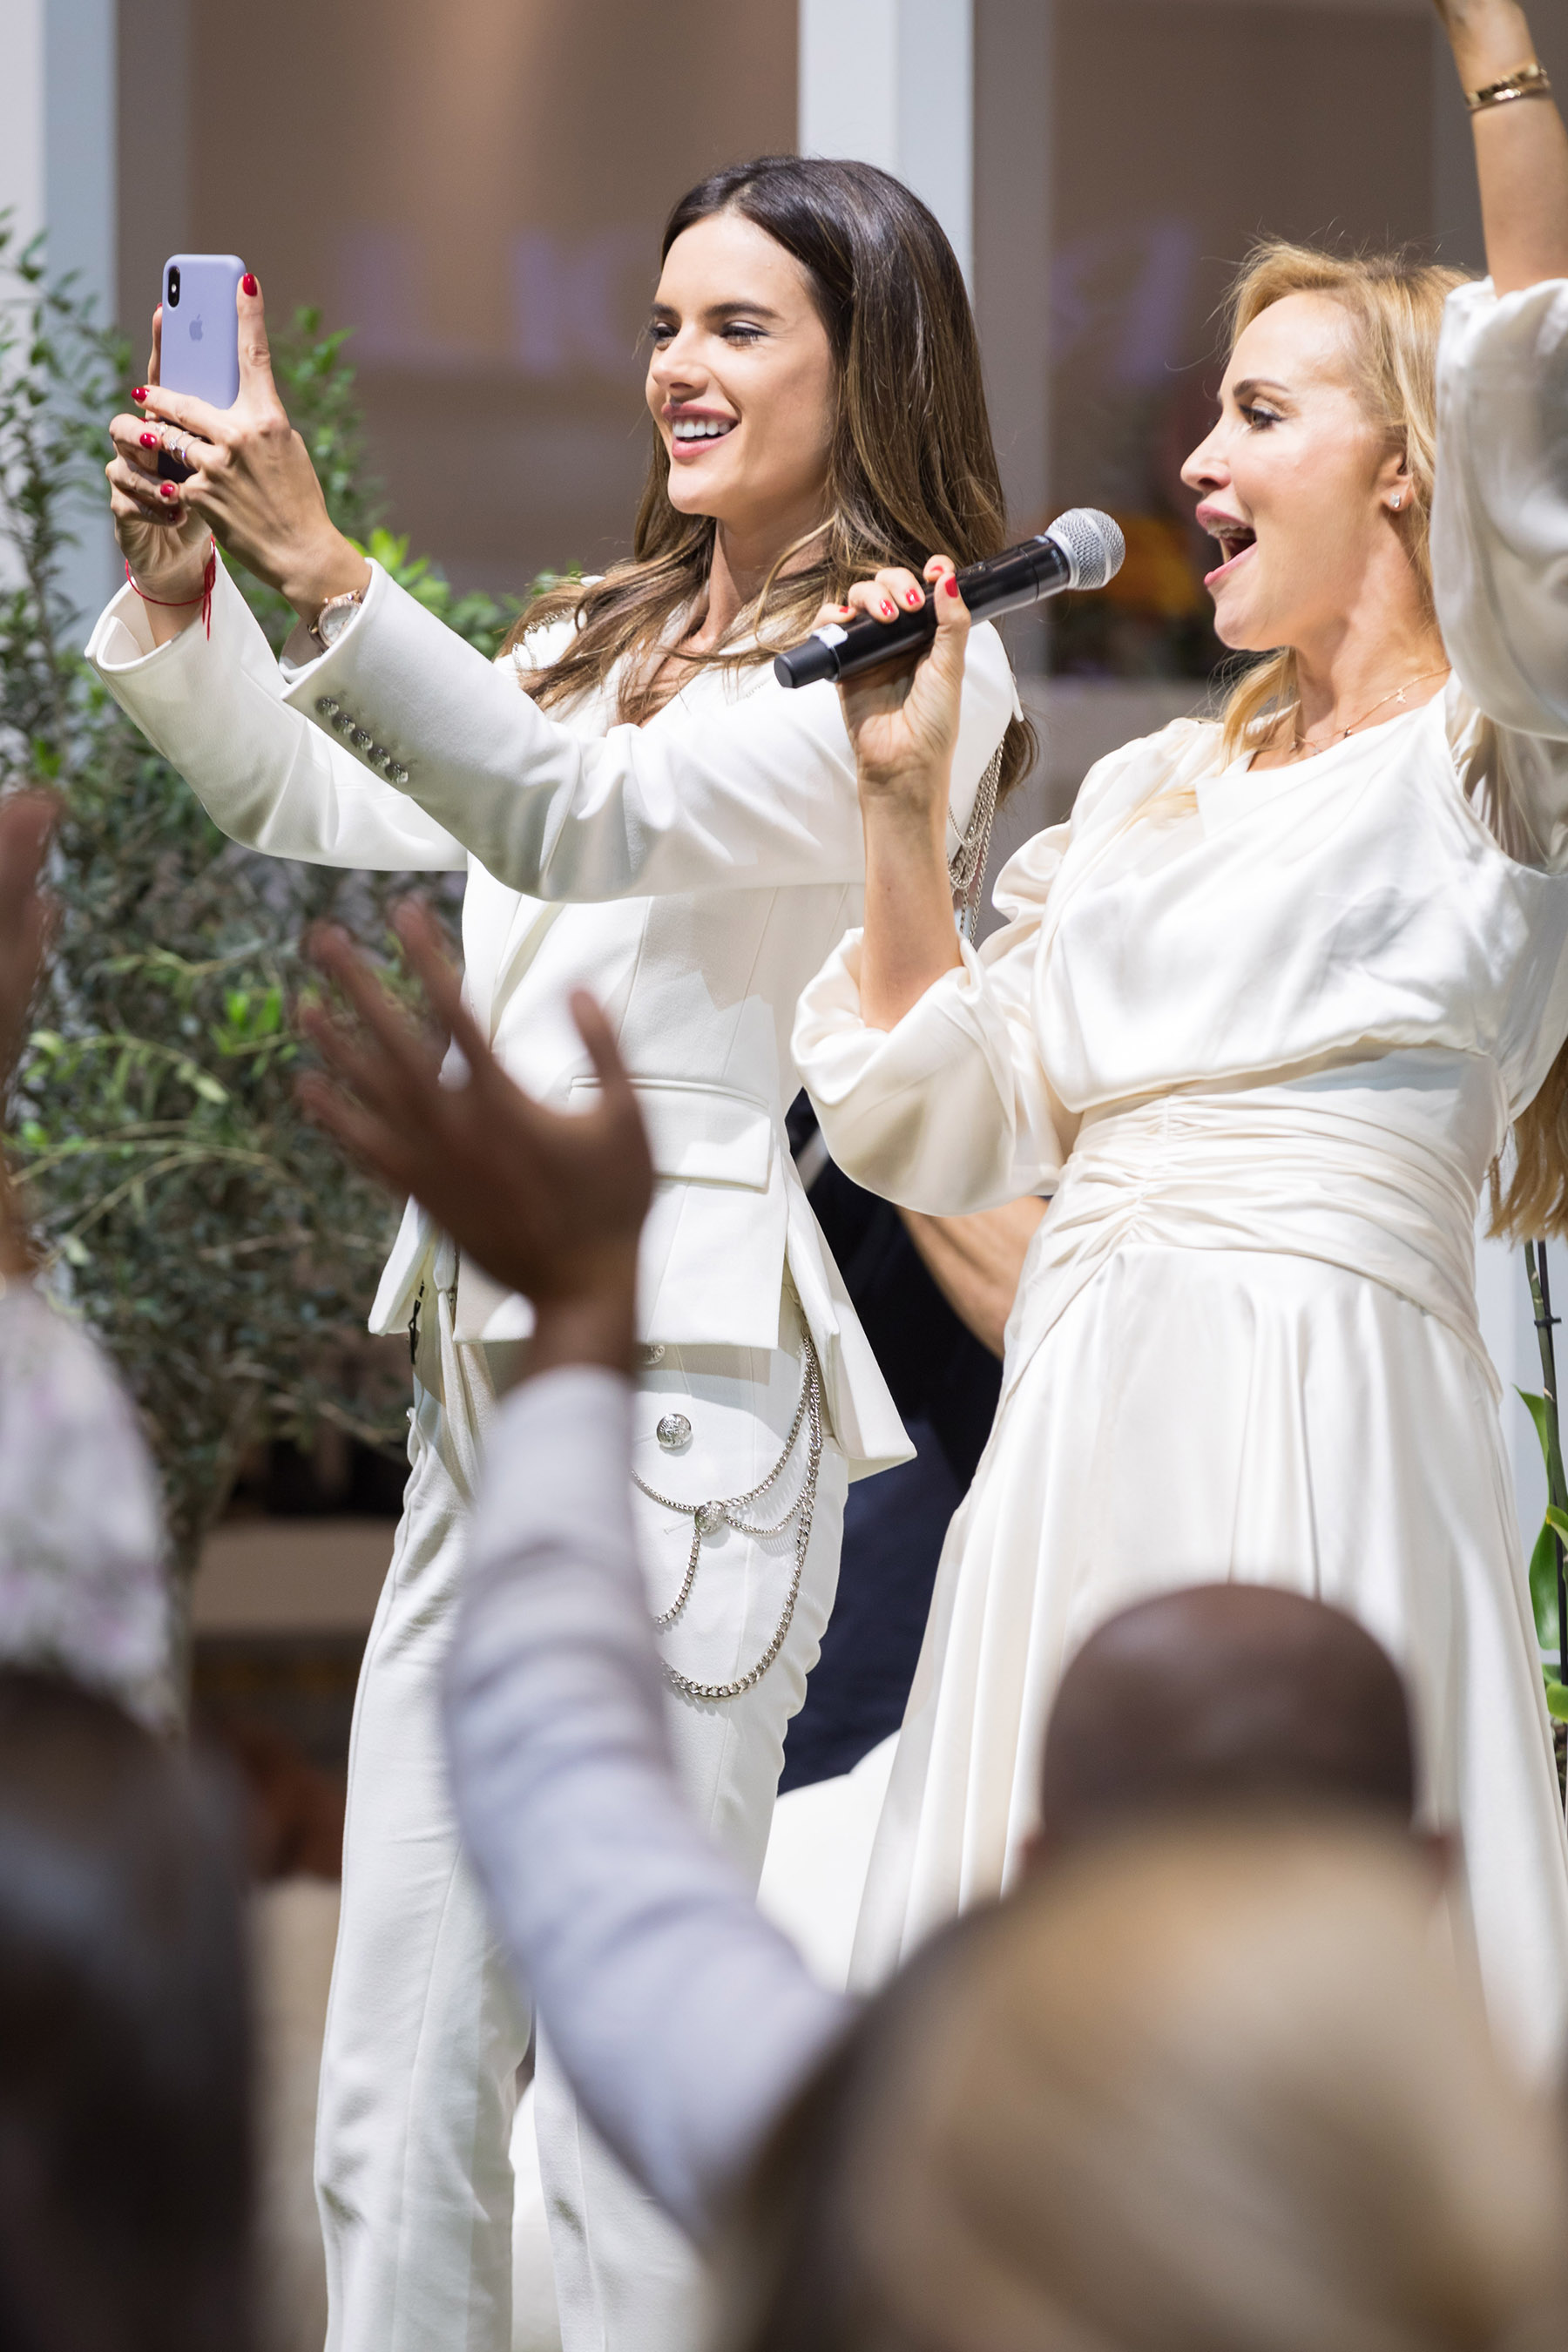 Alessandra Ambrosio and Louise Nichol at Harpers Bazaar House of Fashion by Loesje Kessels Event Photographer Dubai